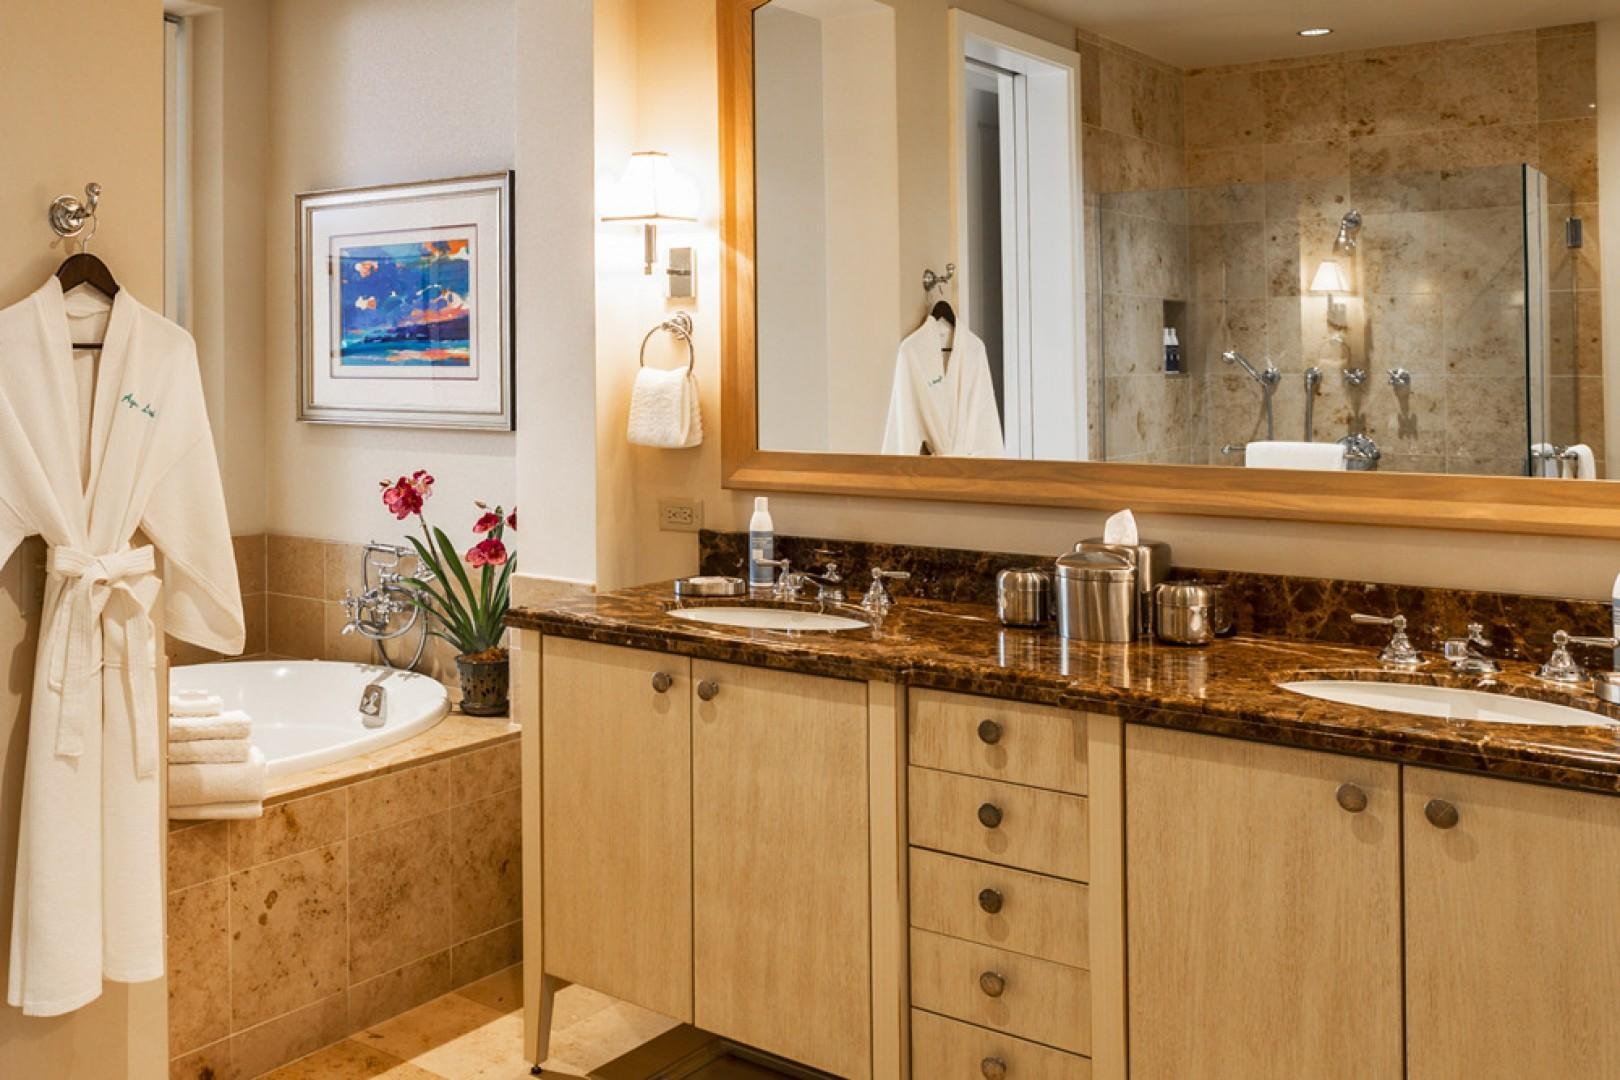 En suite master bath with large soaking tub, separate glass shower, dual vanities, private water closet, spacious walk-in closet, and safe.